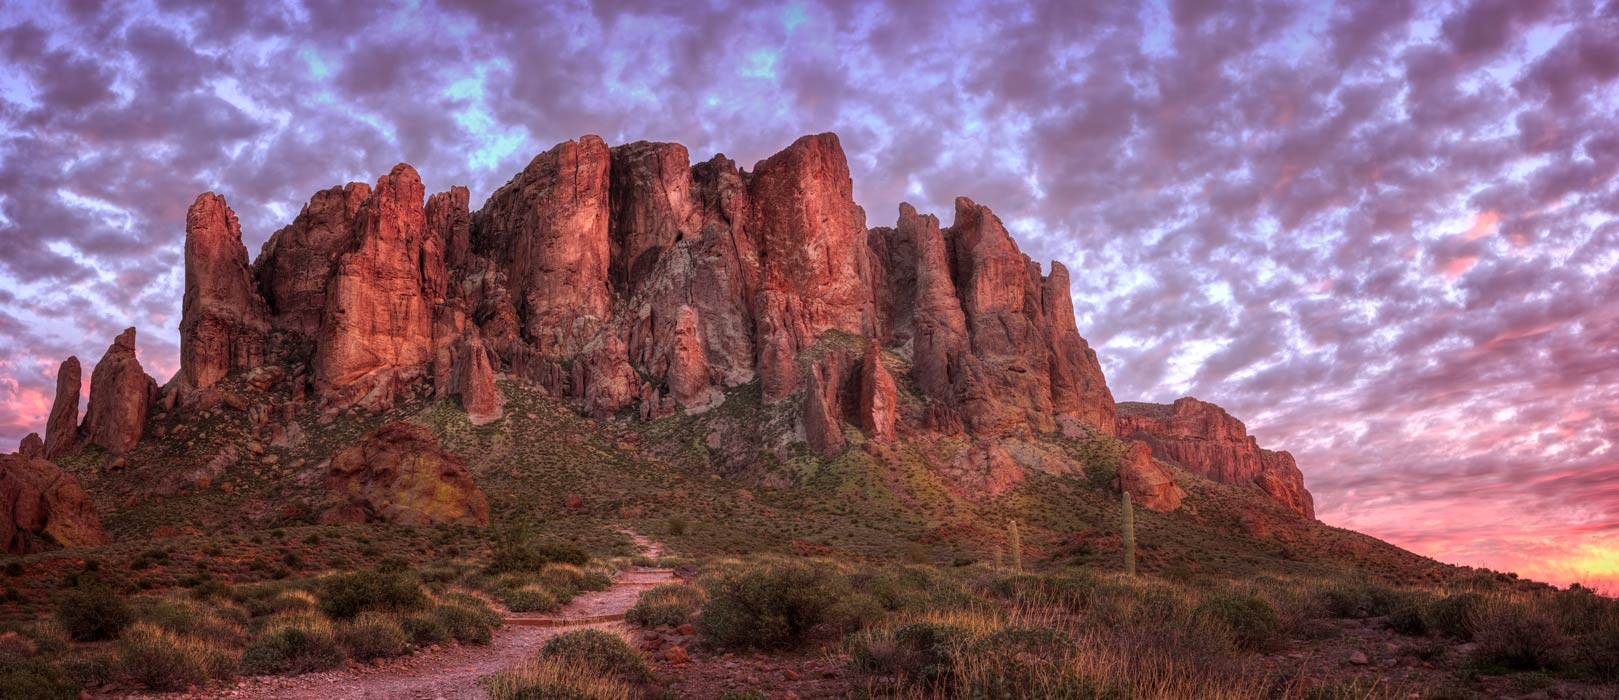 Searching for the Gold of the Lost Dutchman Mine in the Superstition Mountains